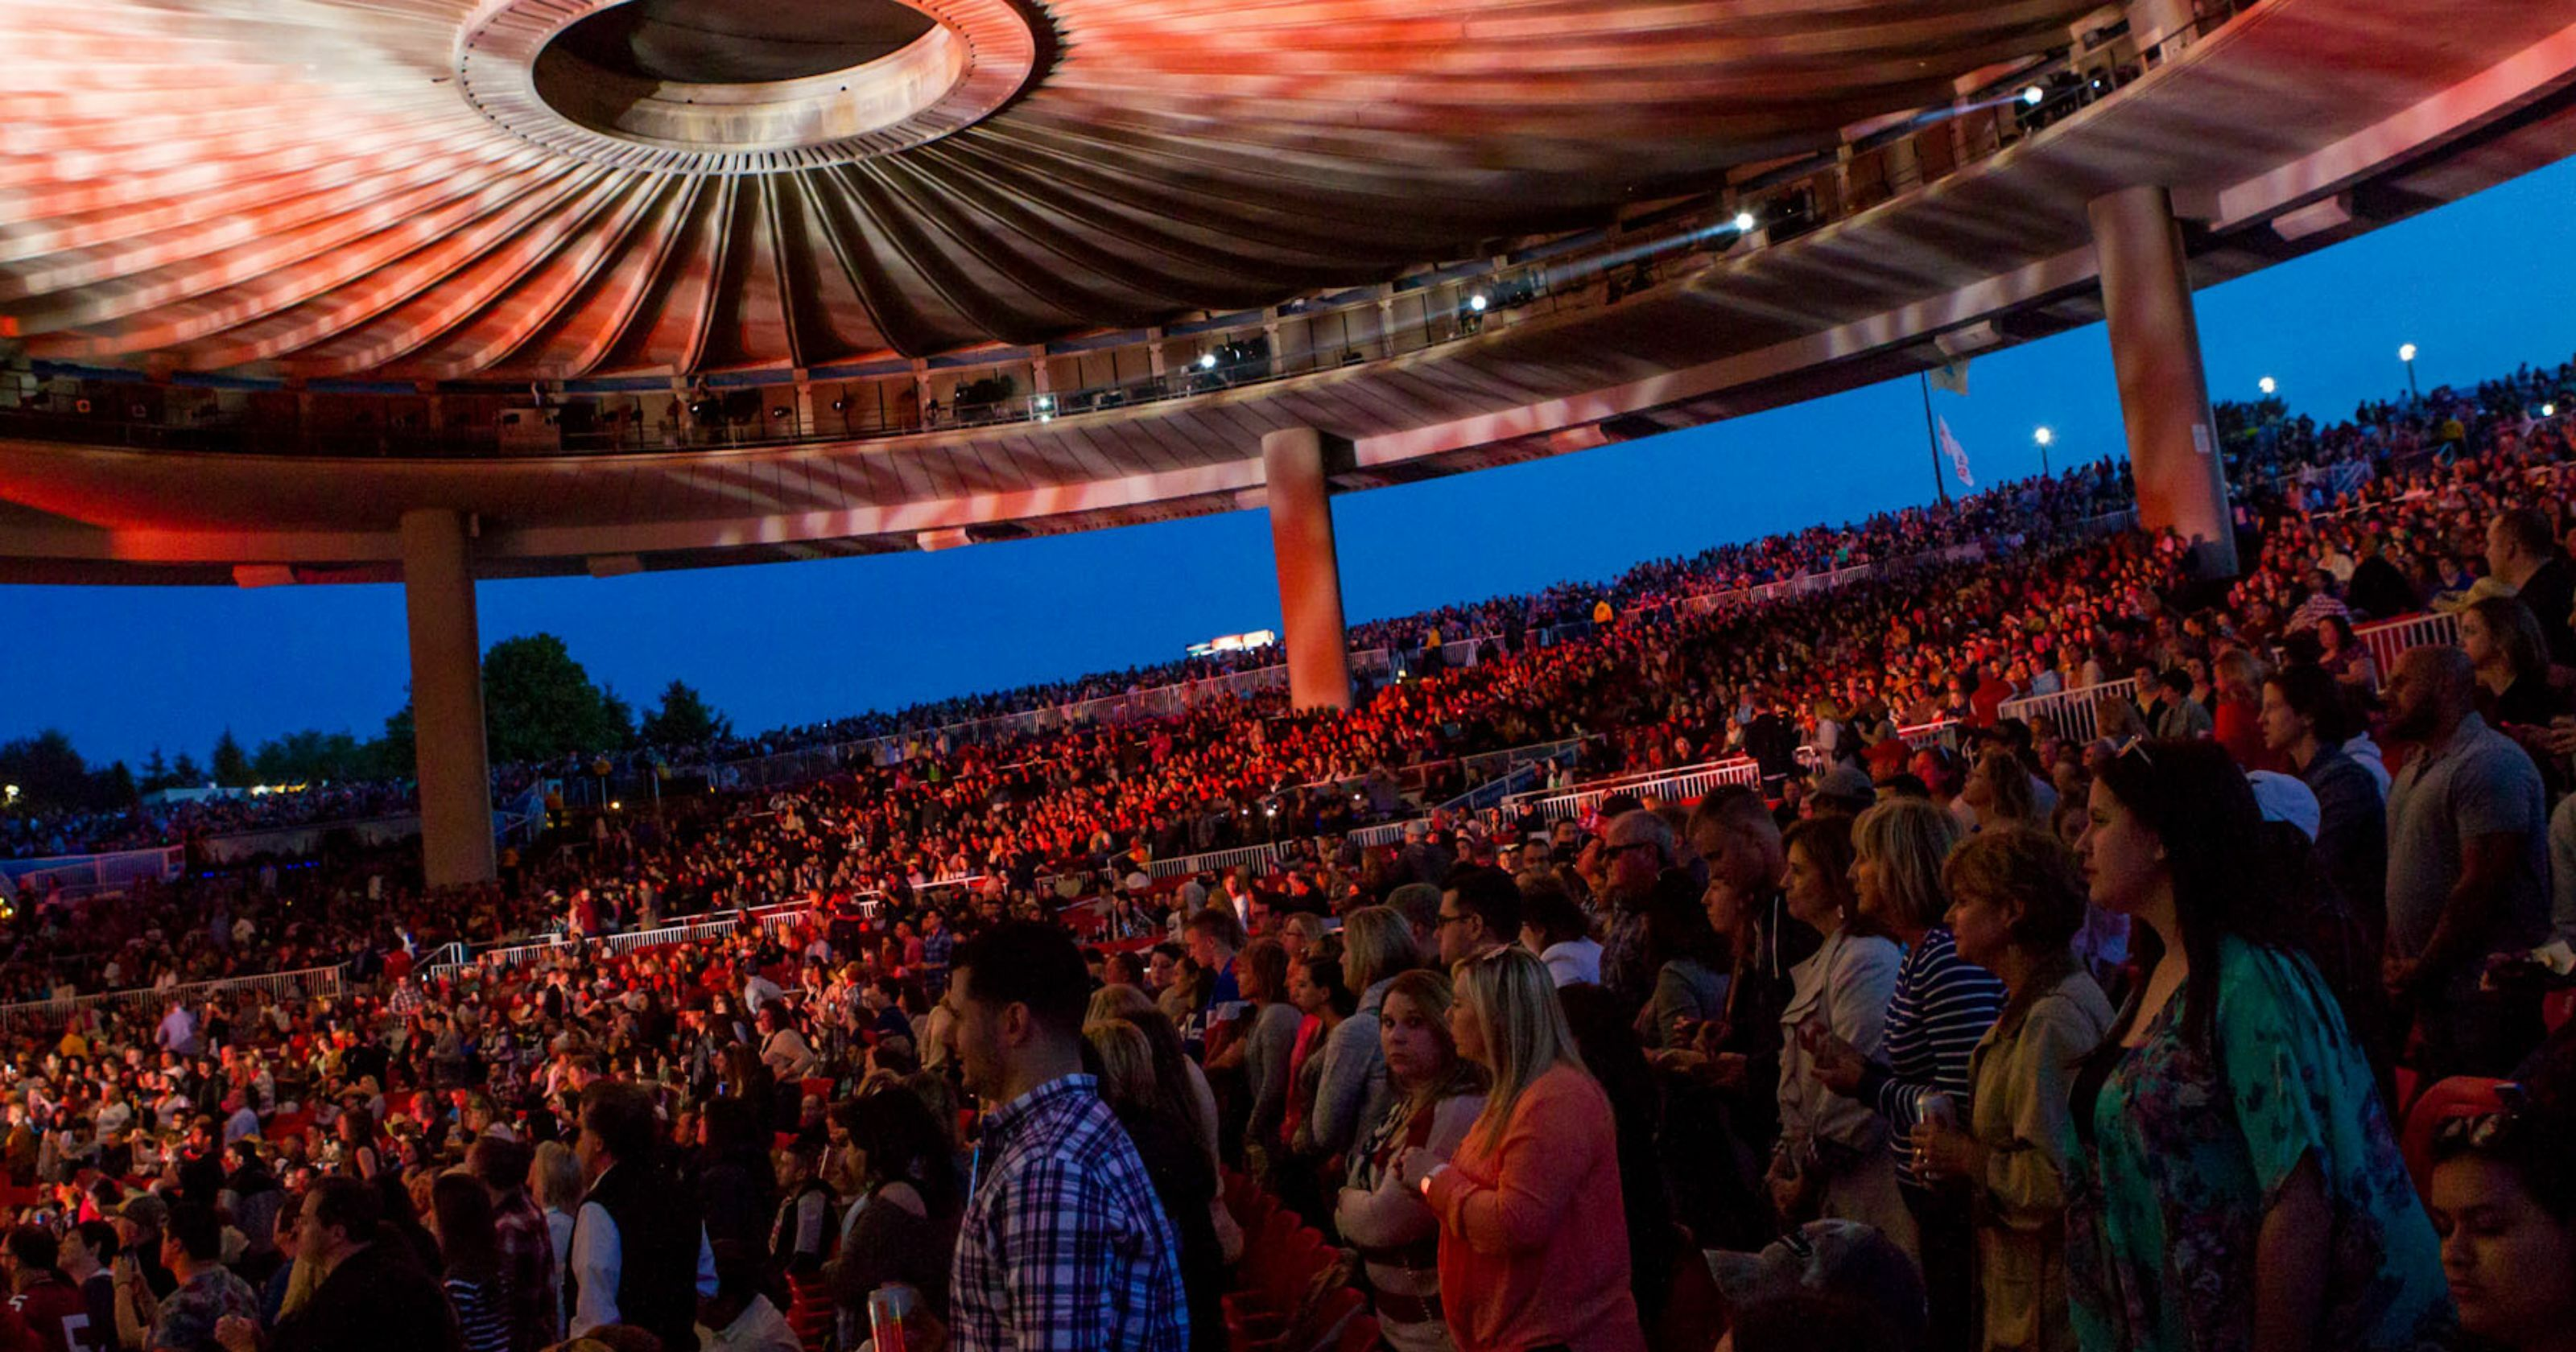 pnc bank arts center, holmdel, nj: tickets, schedule, seating charts